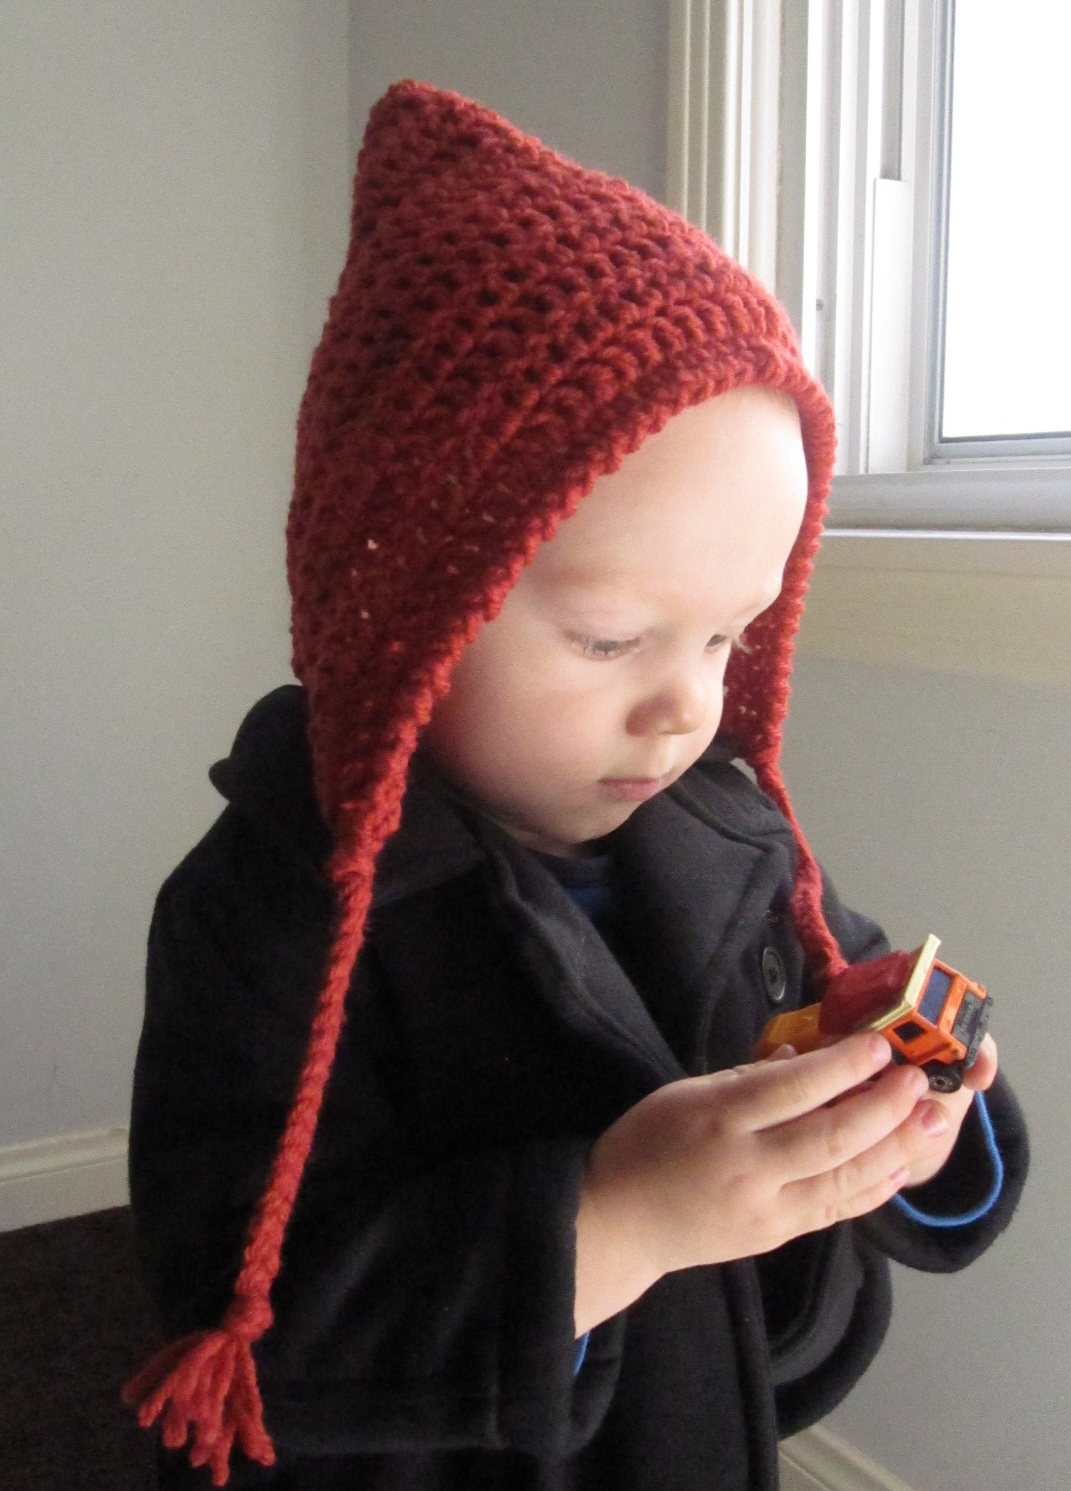 Lively Crochet - Rhythmic Youth: Crochet Pixi Hood Pattern